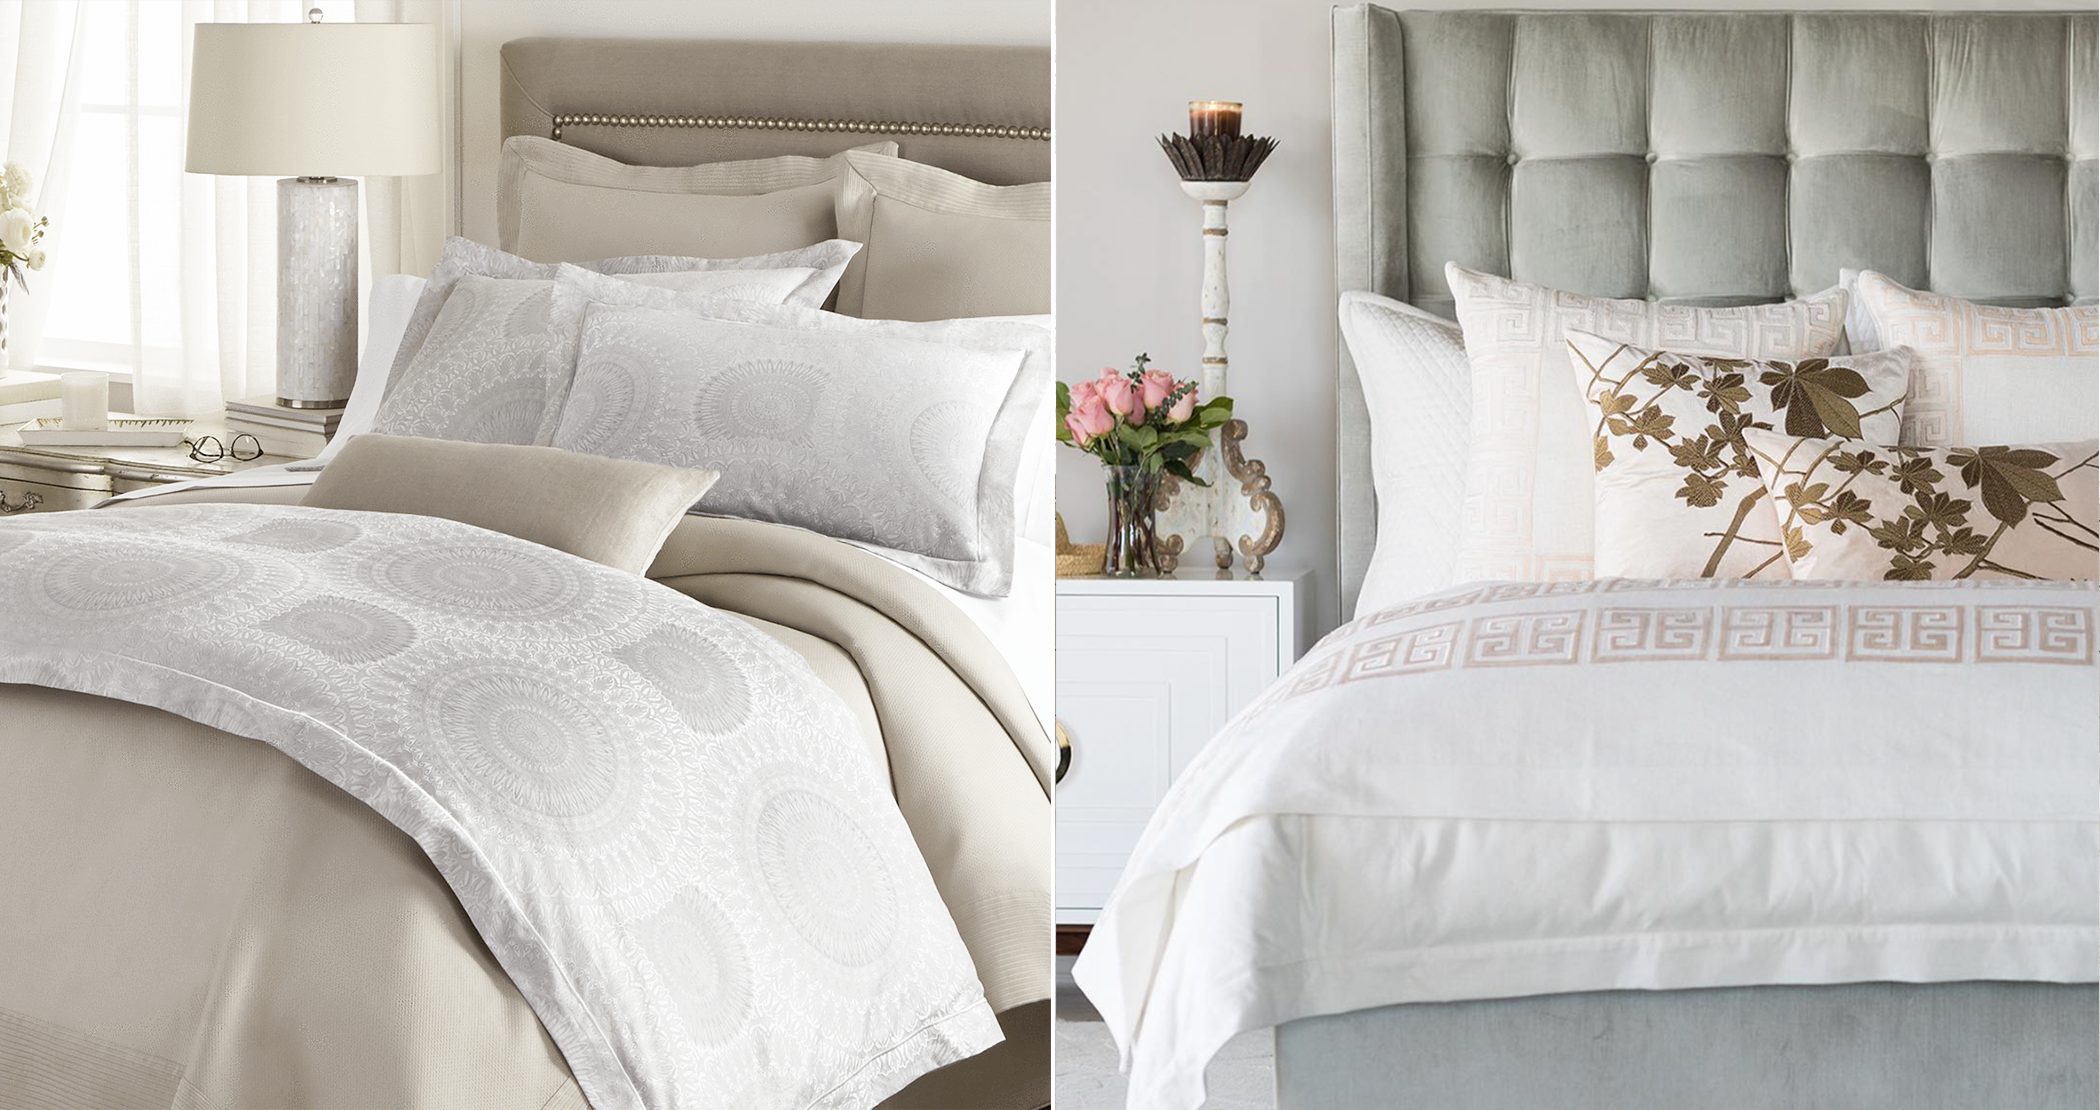 photo collage of chic bedding